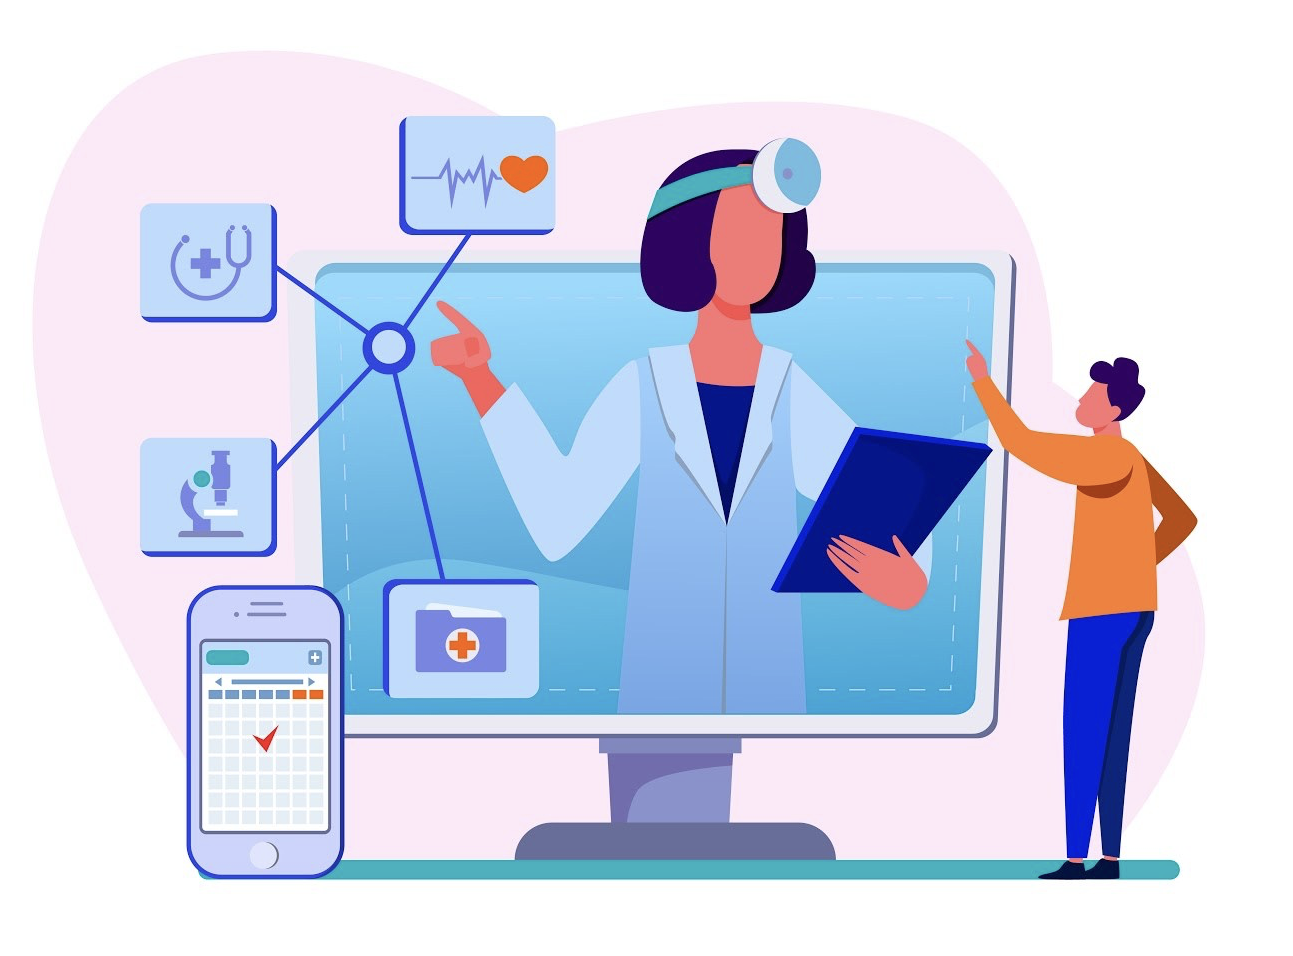 How can we successfully implement a telemedicine solution and then use it? To make an accurate choice, let's examine the main merits and demerits of several telemedicine options.